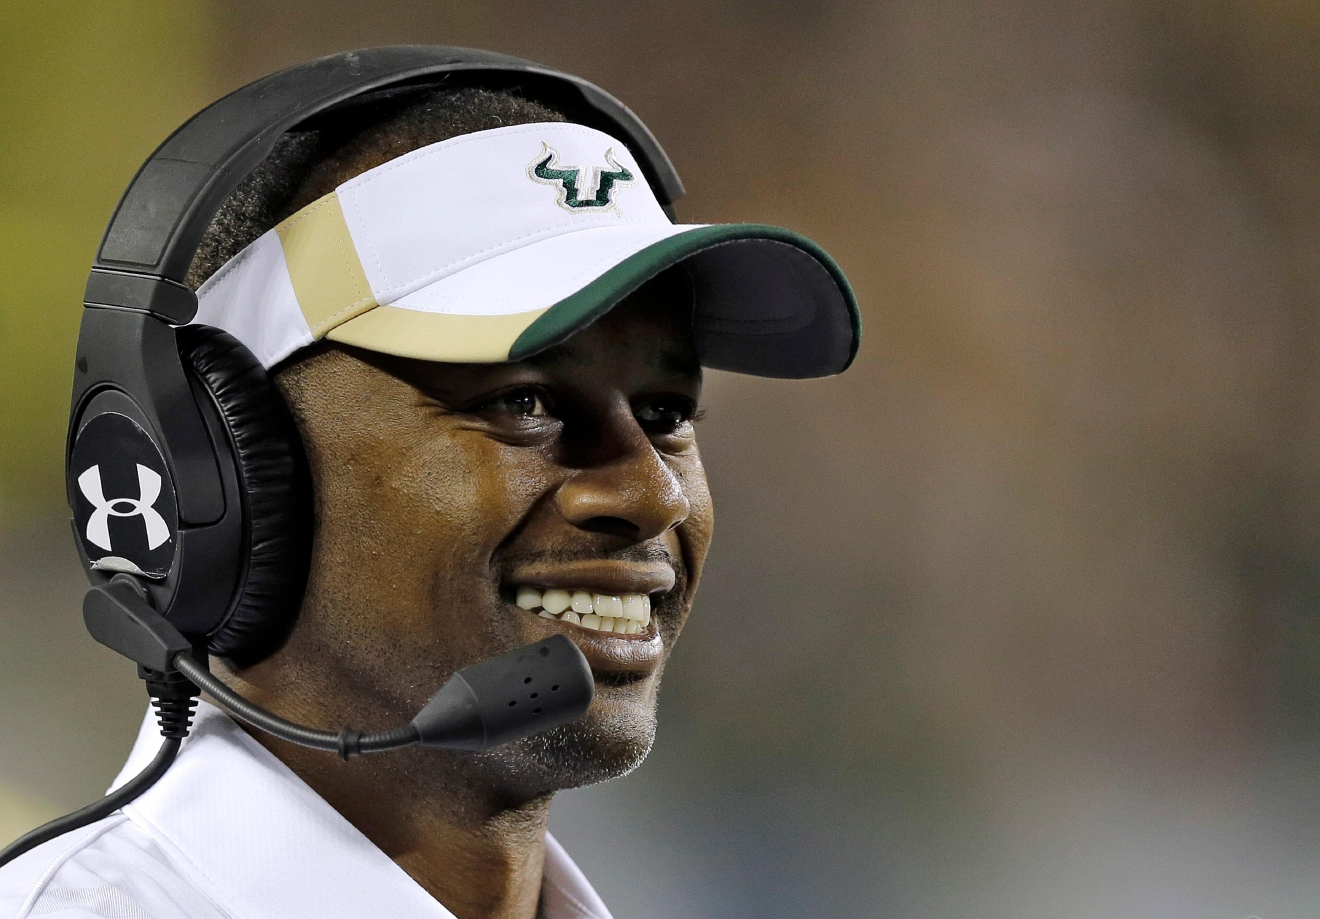 FILE - In this Nov. 20, 2015, file photo, South Florida head coach Willie Taggart looks on during the second half of an NCAA college football game against Cincinnati, in Tampa, Fla. South Florida football coach Willie Taggart has informed the school that he is leaving to become the coach at Oregon, a person with direct knowledge of the situation tells The Associated Press. The person spoke on condition of anonymity because neither school was prepared to make an official announcement. (AP Photo/Chris O'Meara, File)